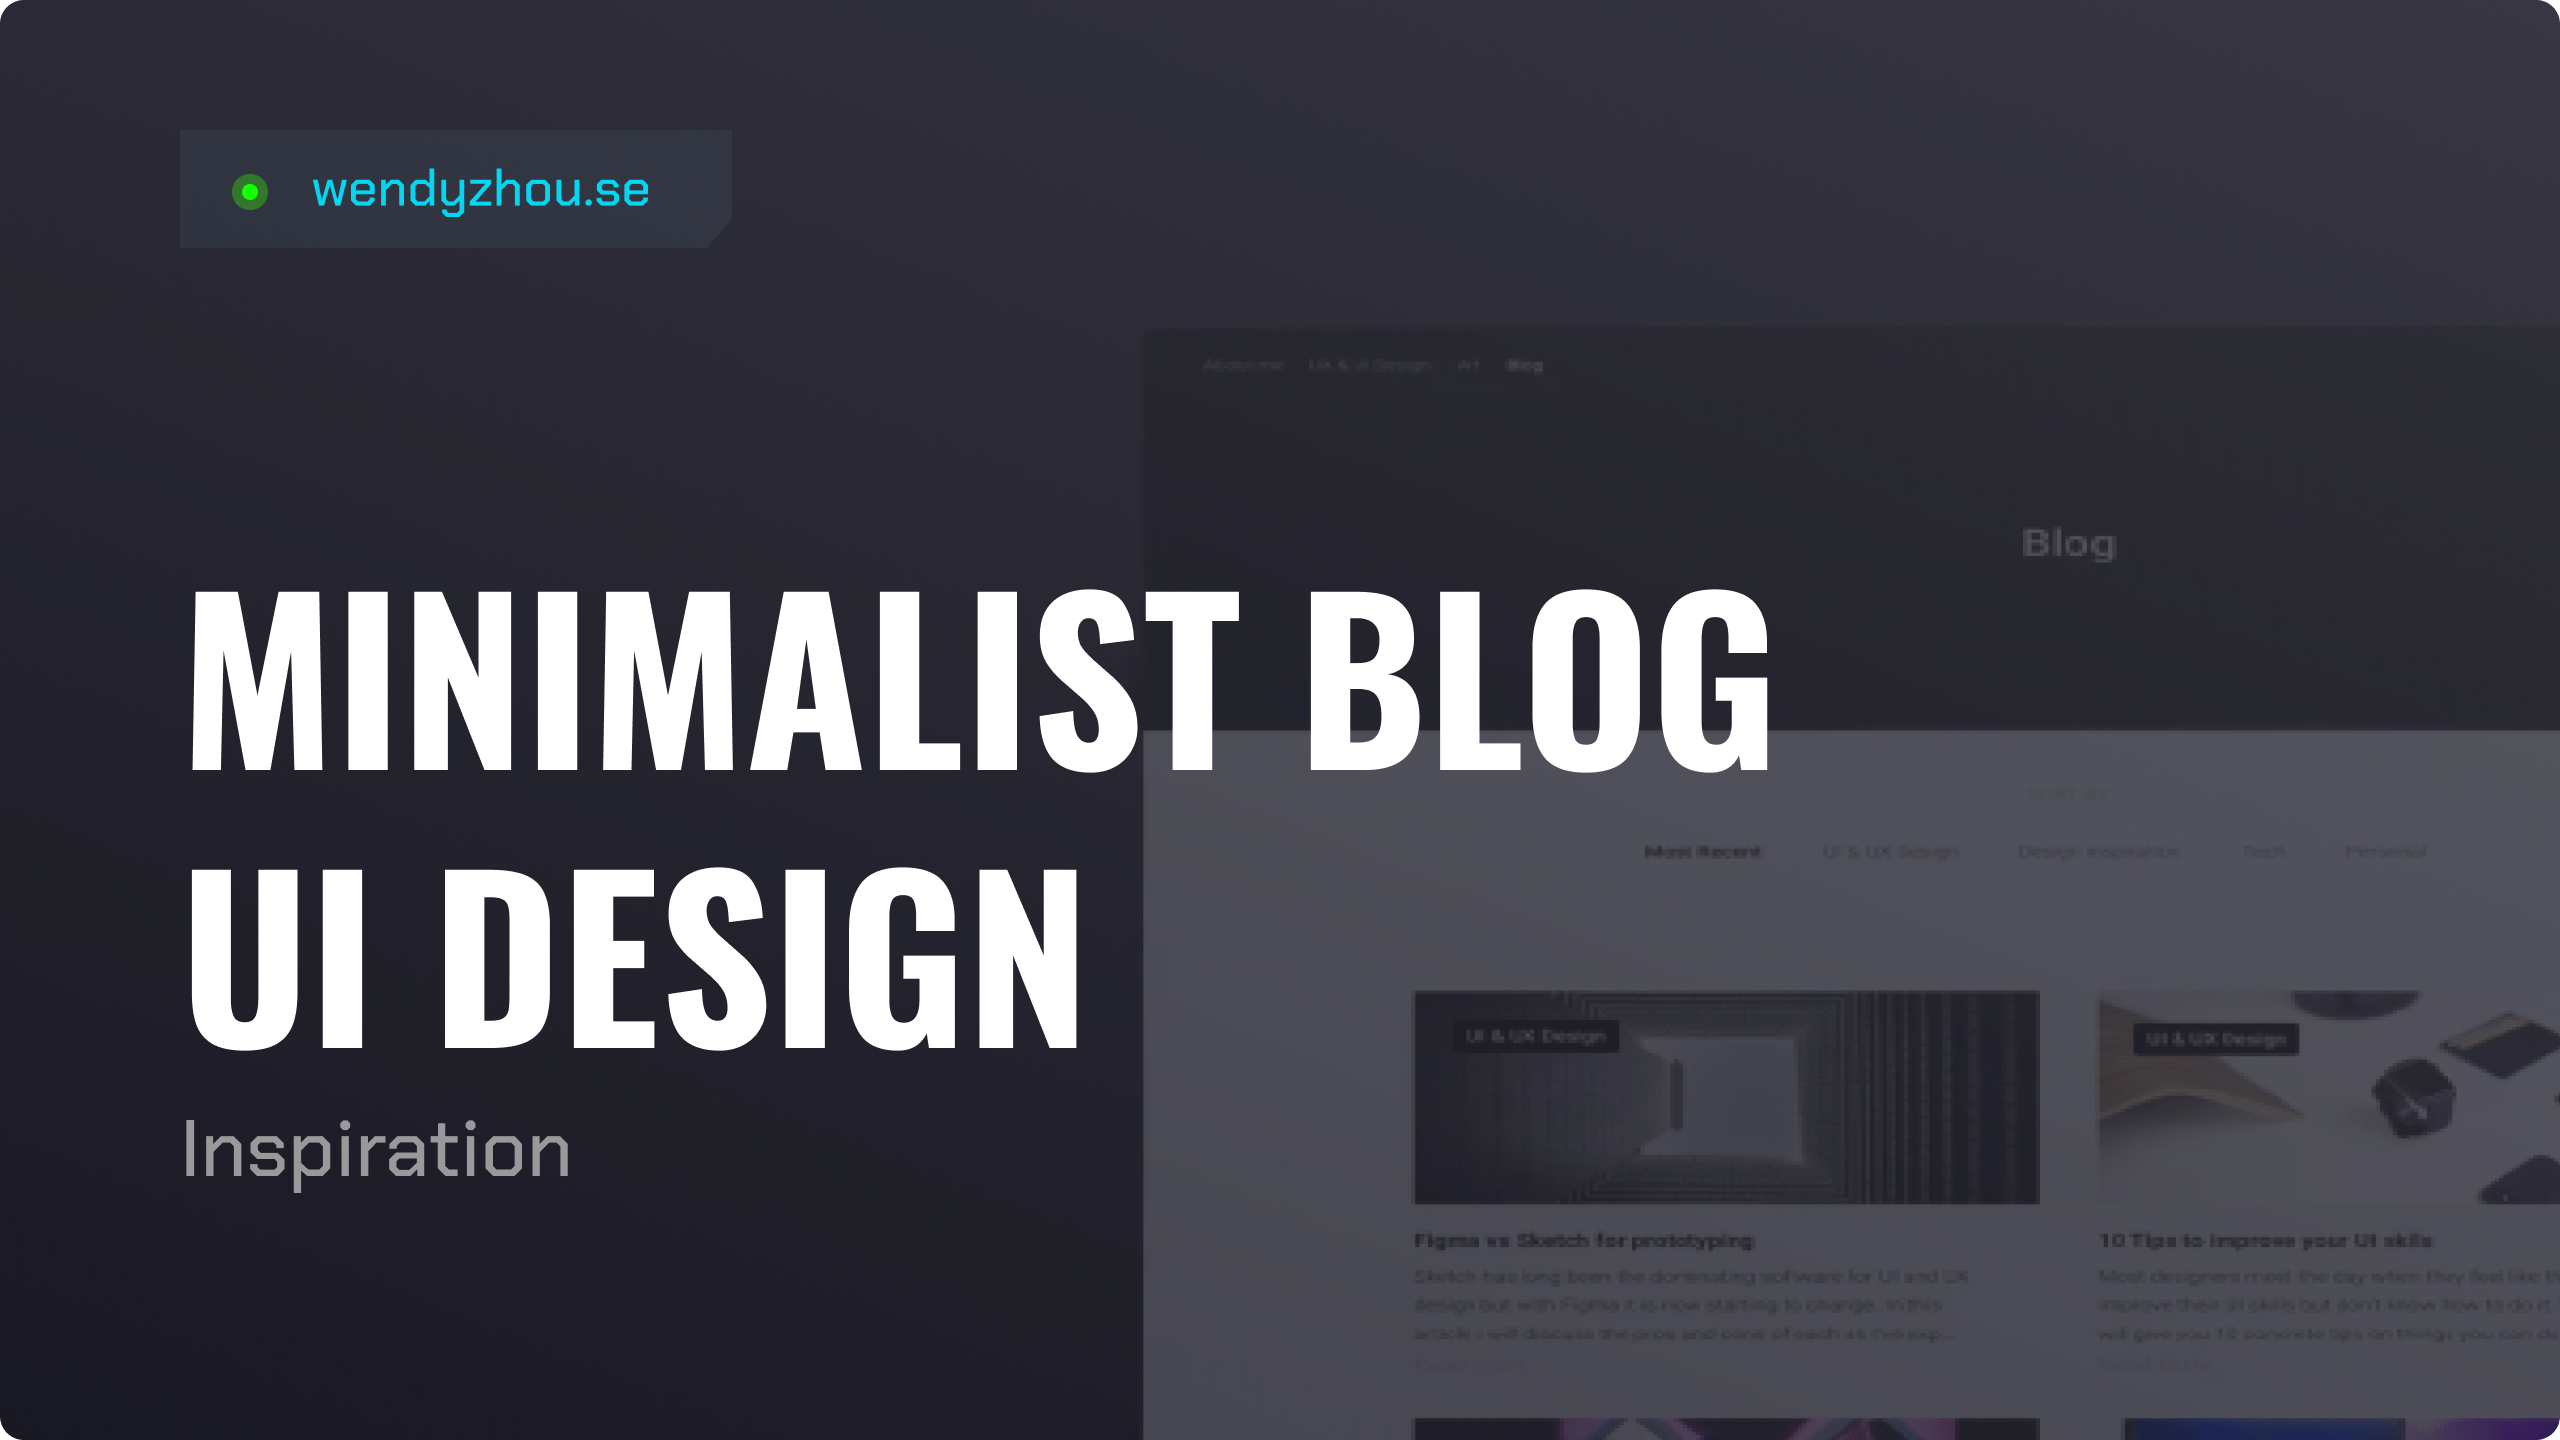 Minimalist Blog UI Design